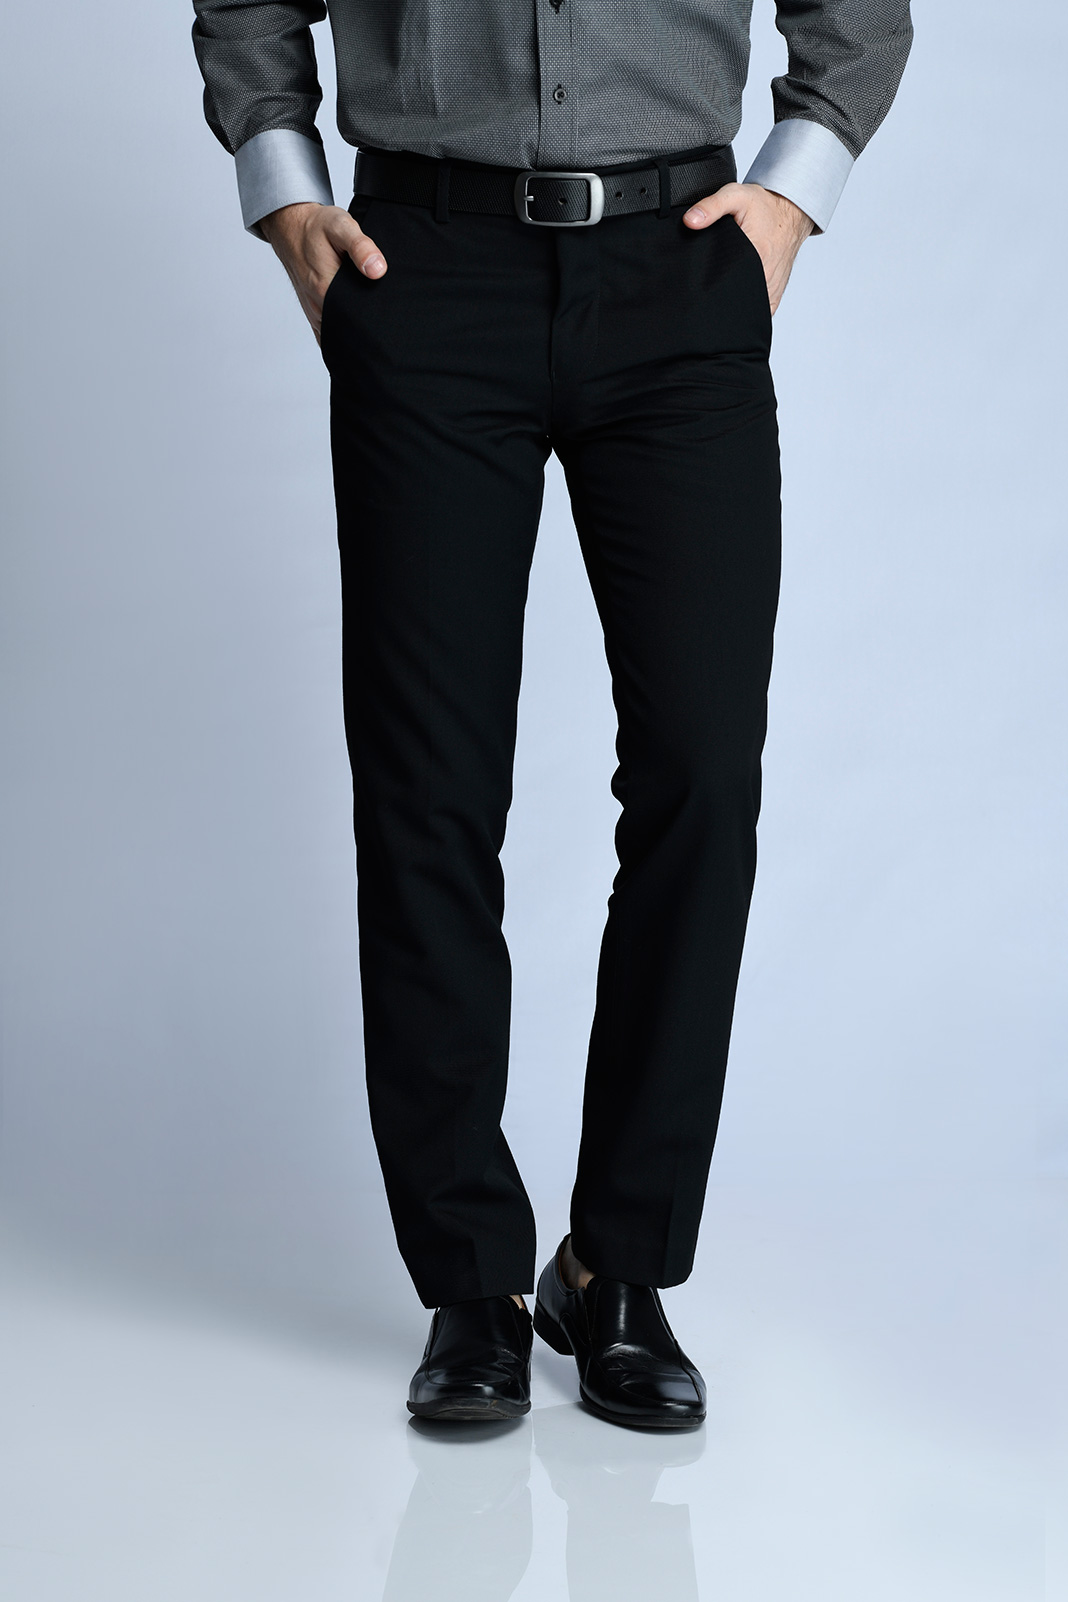 CELANA PANJANG FORMAL SLIM FIT 2 (HITAM)